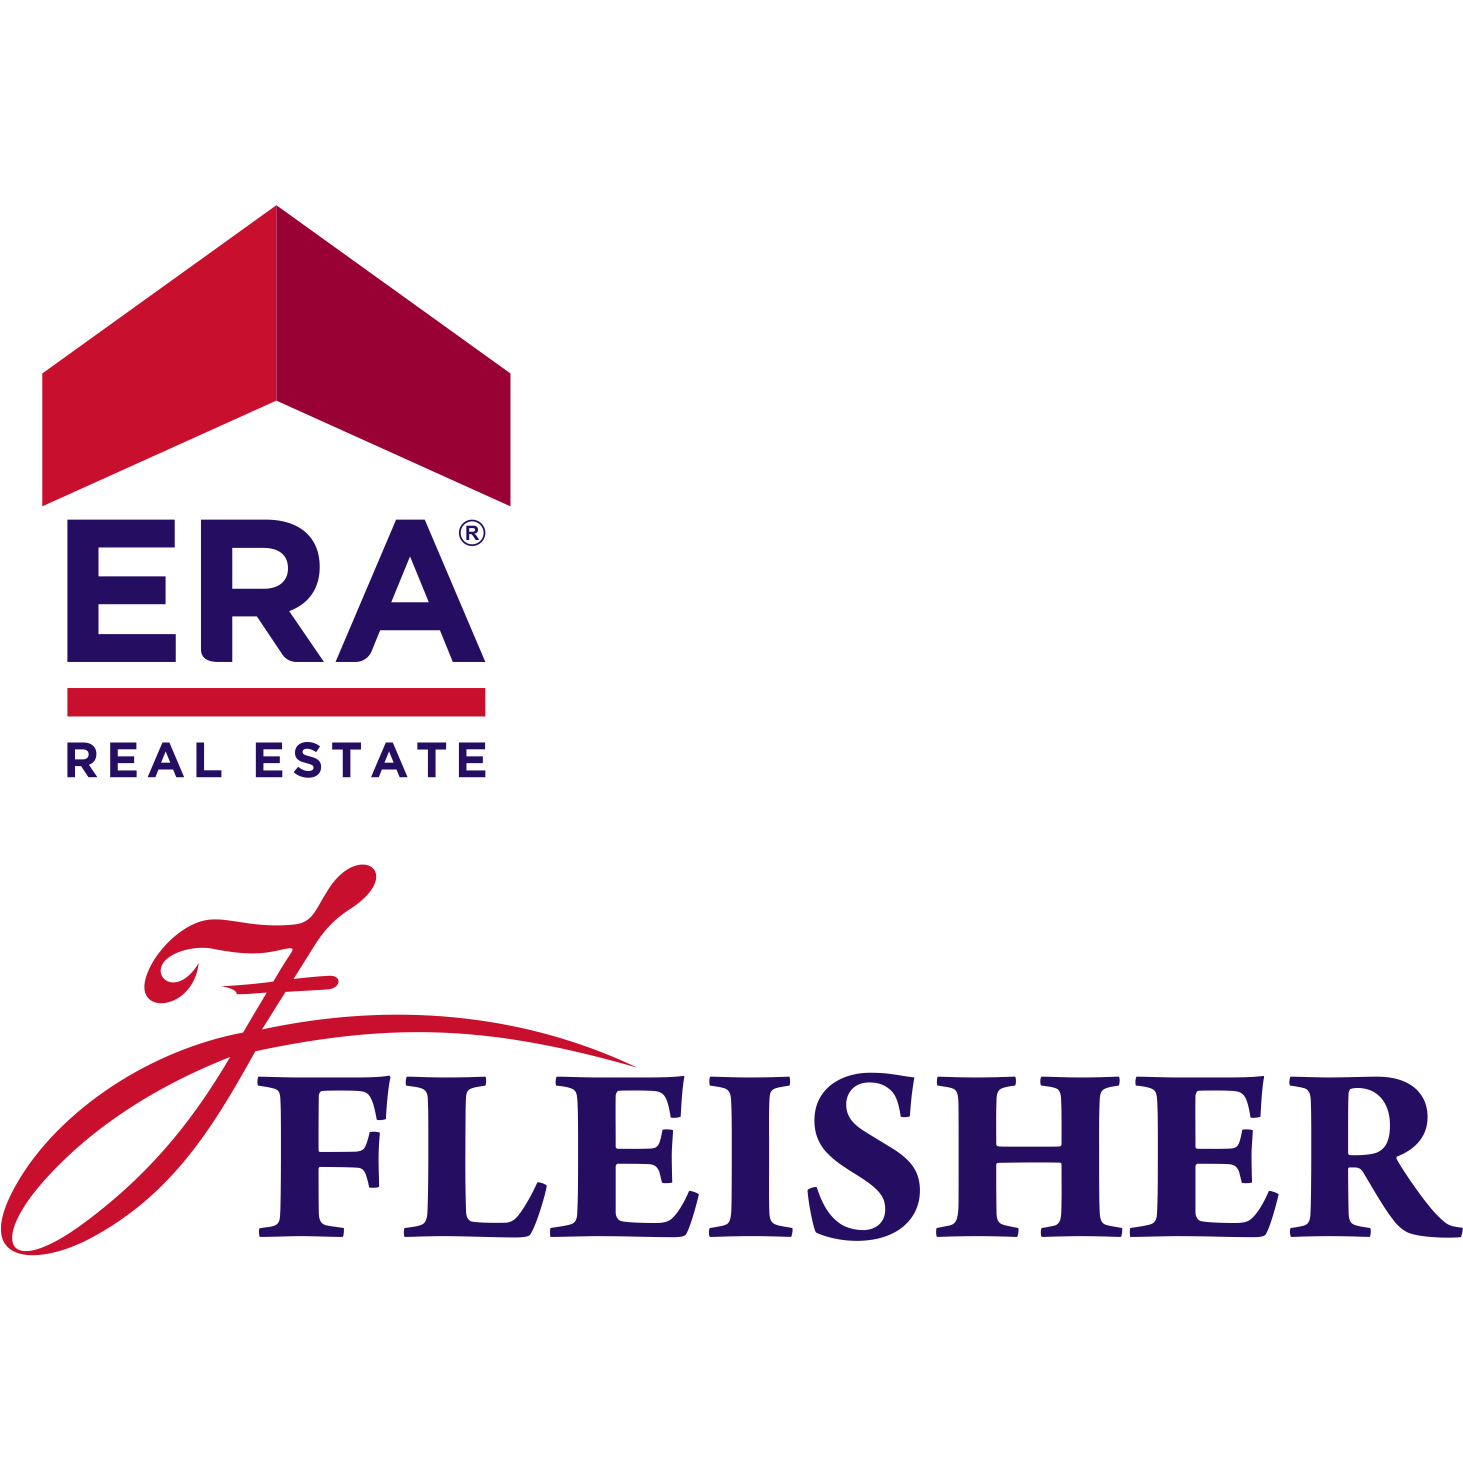 ERA Fleisher Real Estate and Property Management